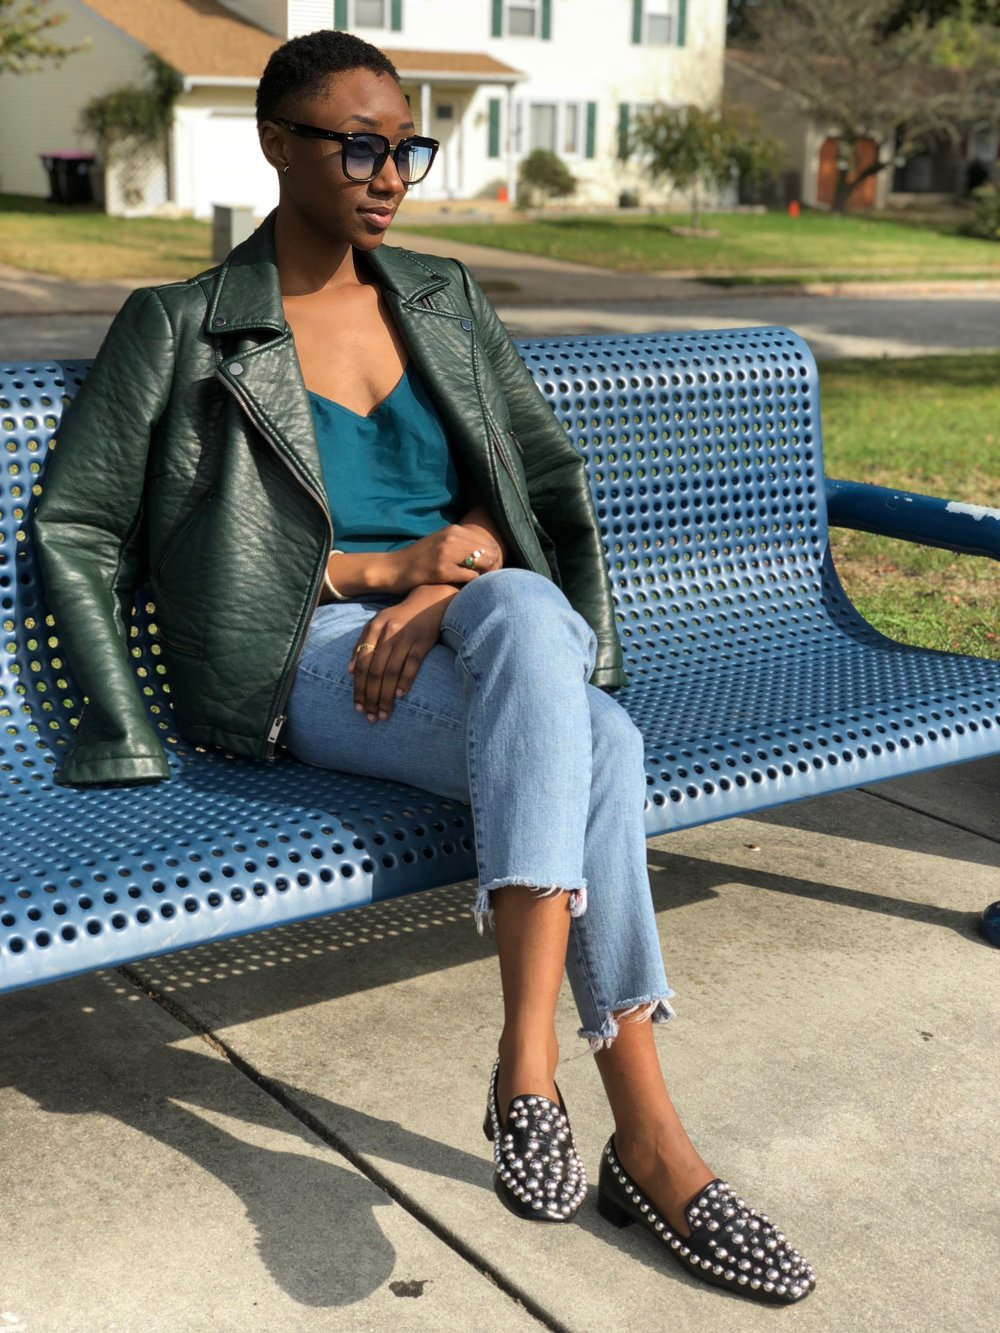 - Thrifted silk top from many moons ago, Forest green leather jacket, Zara studded leather loafers